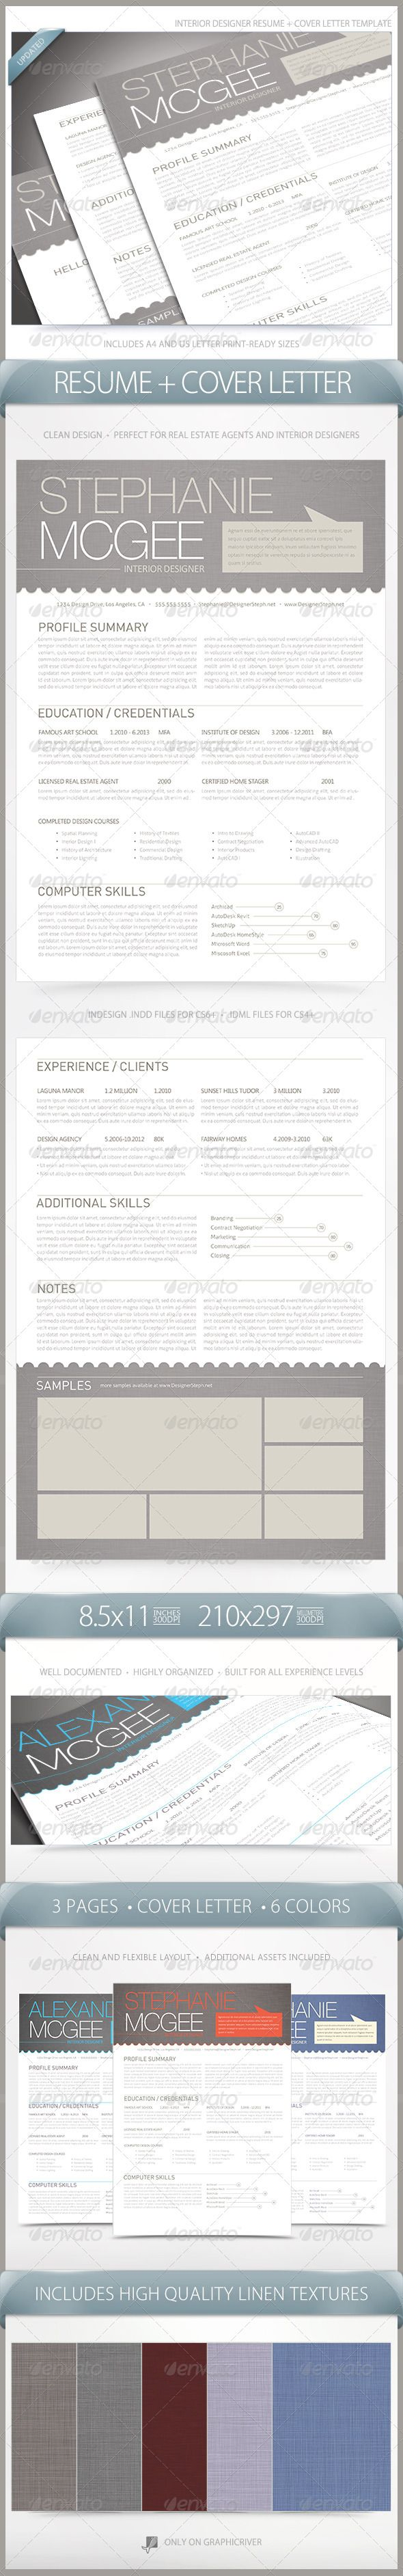 12 best images about interior design intern resume templates for katie on pinterest